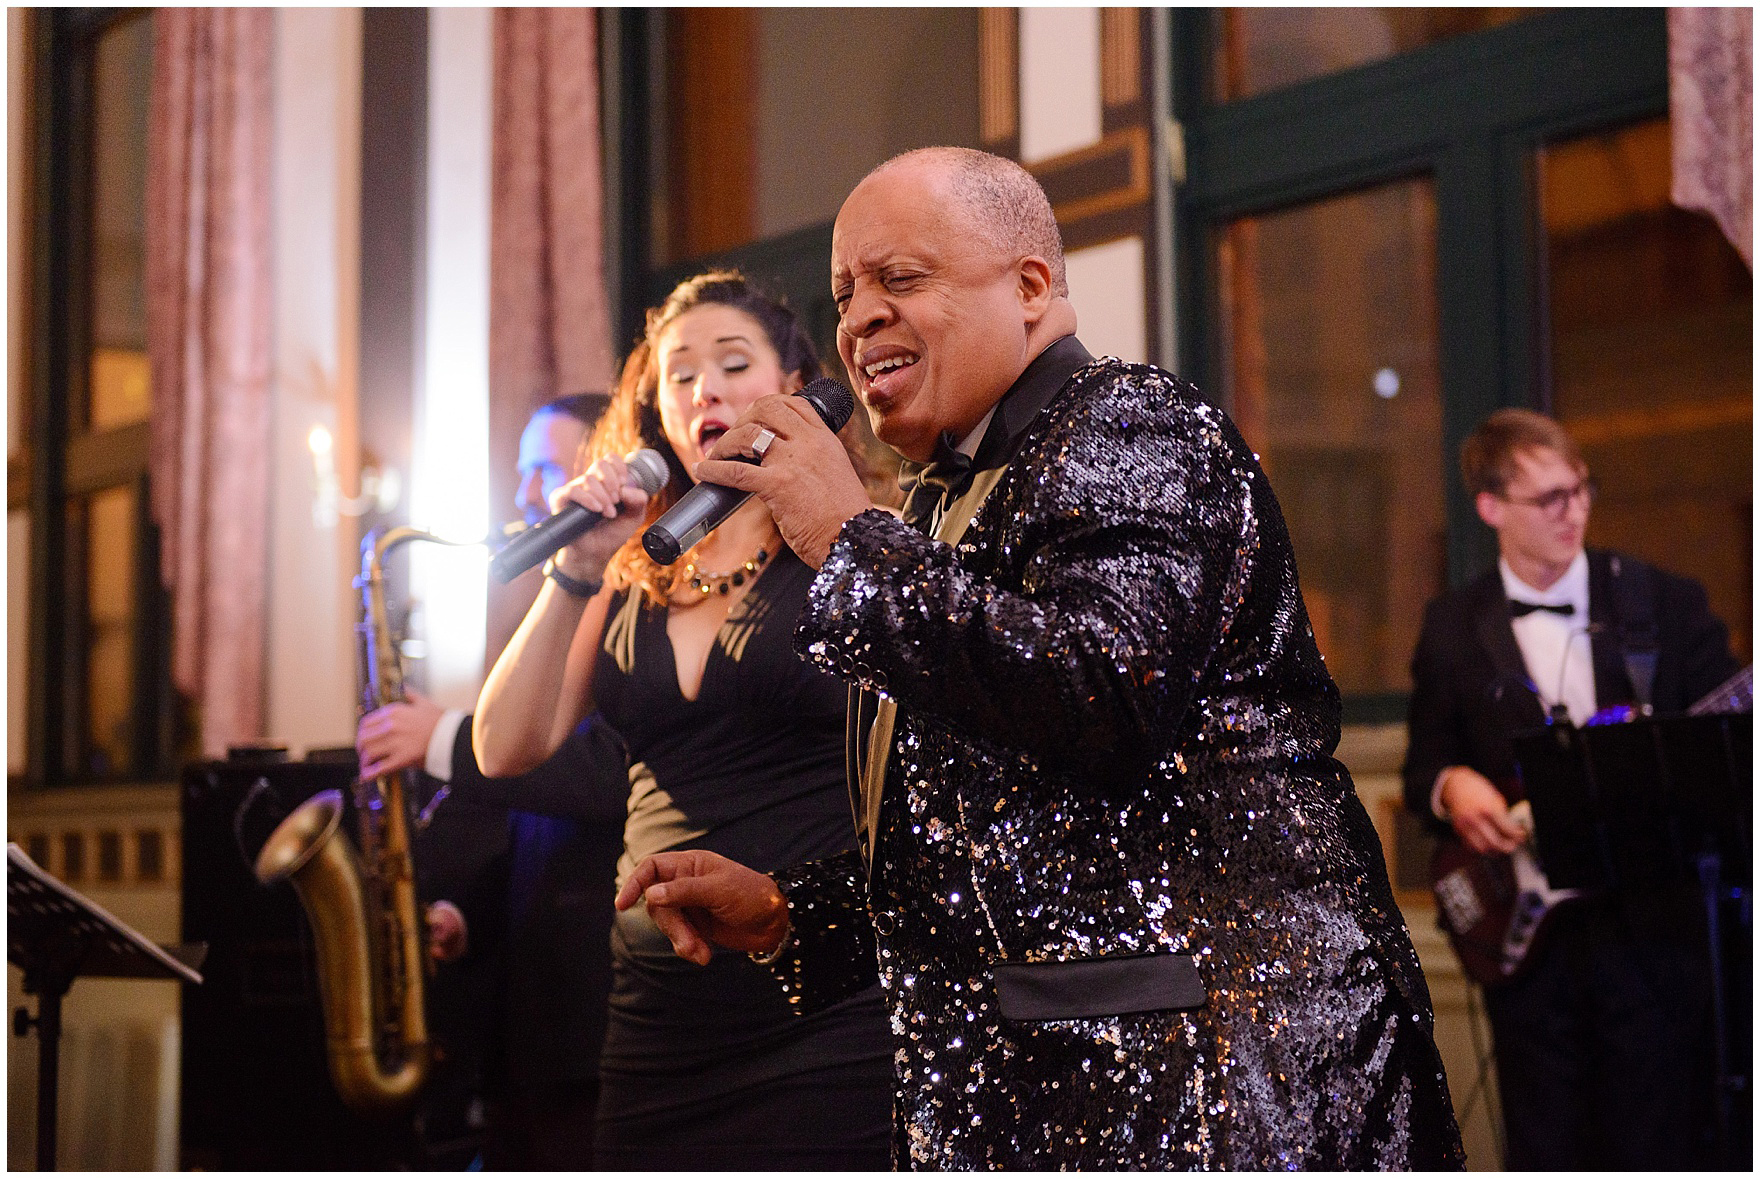 The band Connexion performs during a St. Clement Germania Place Chicago wedding.